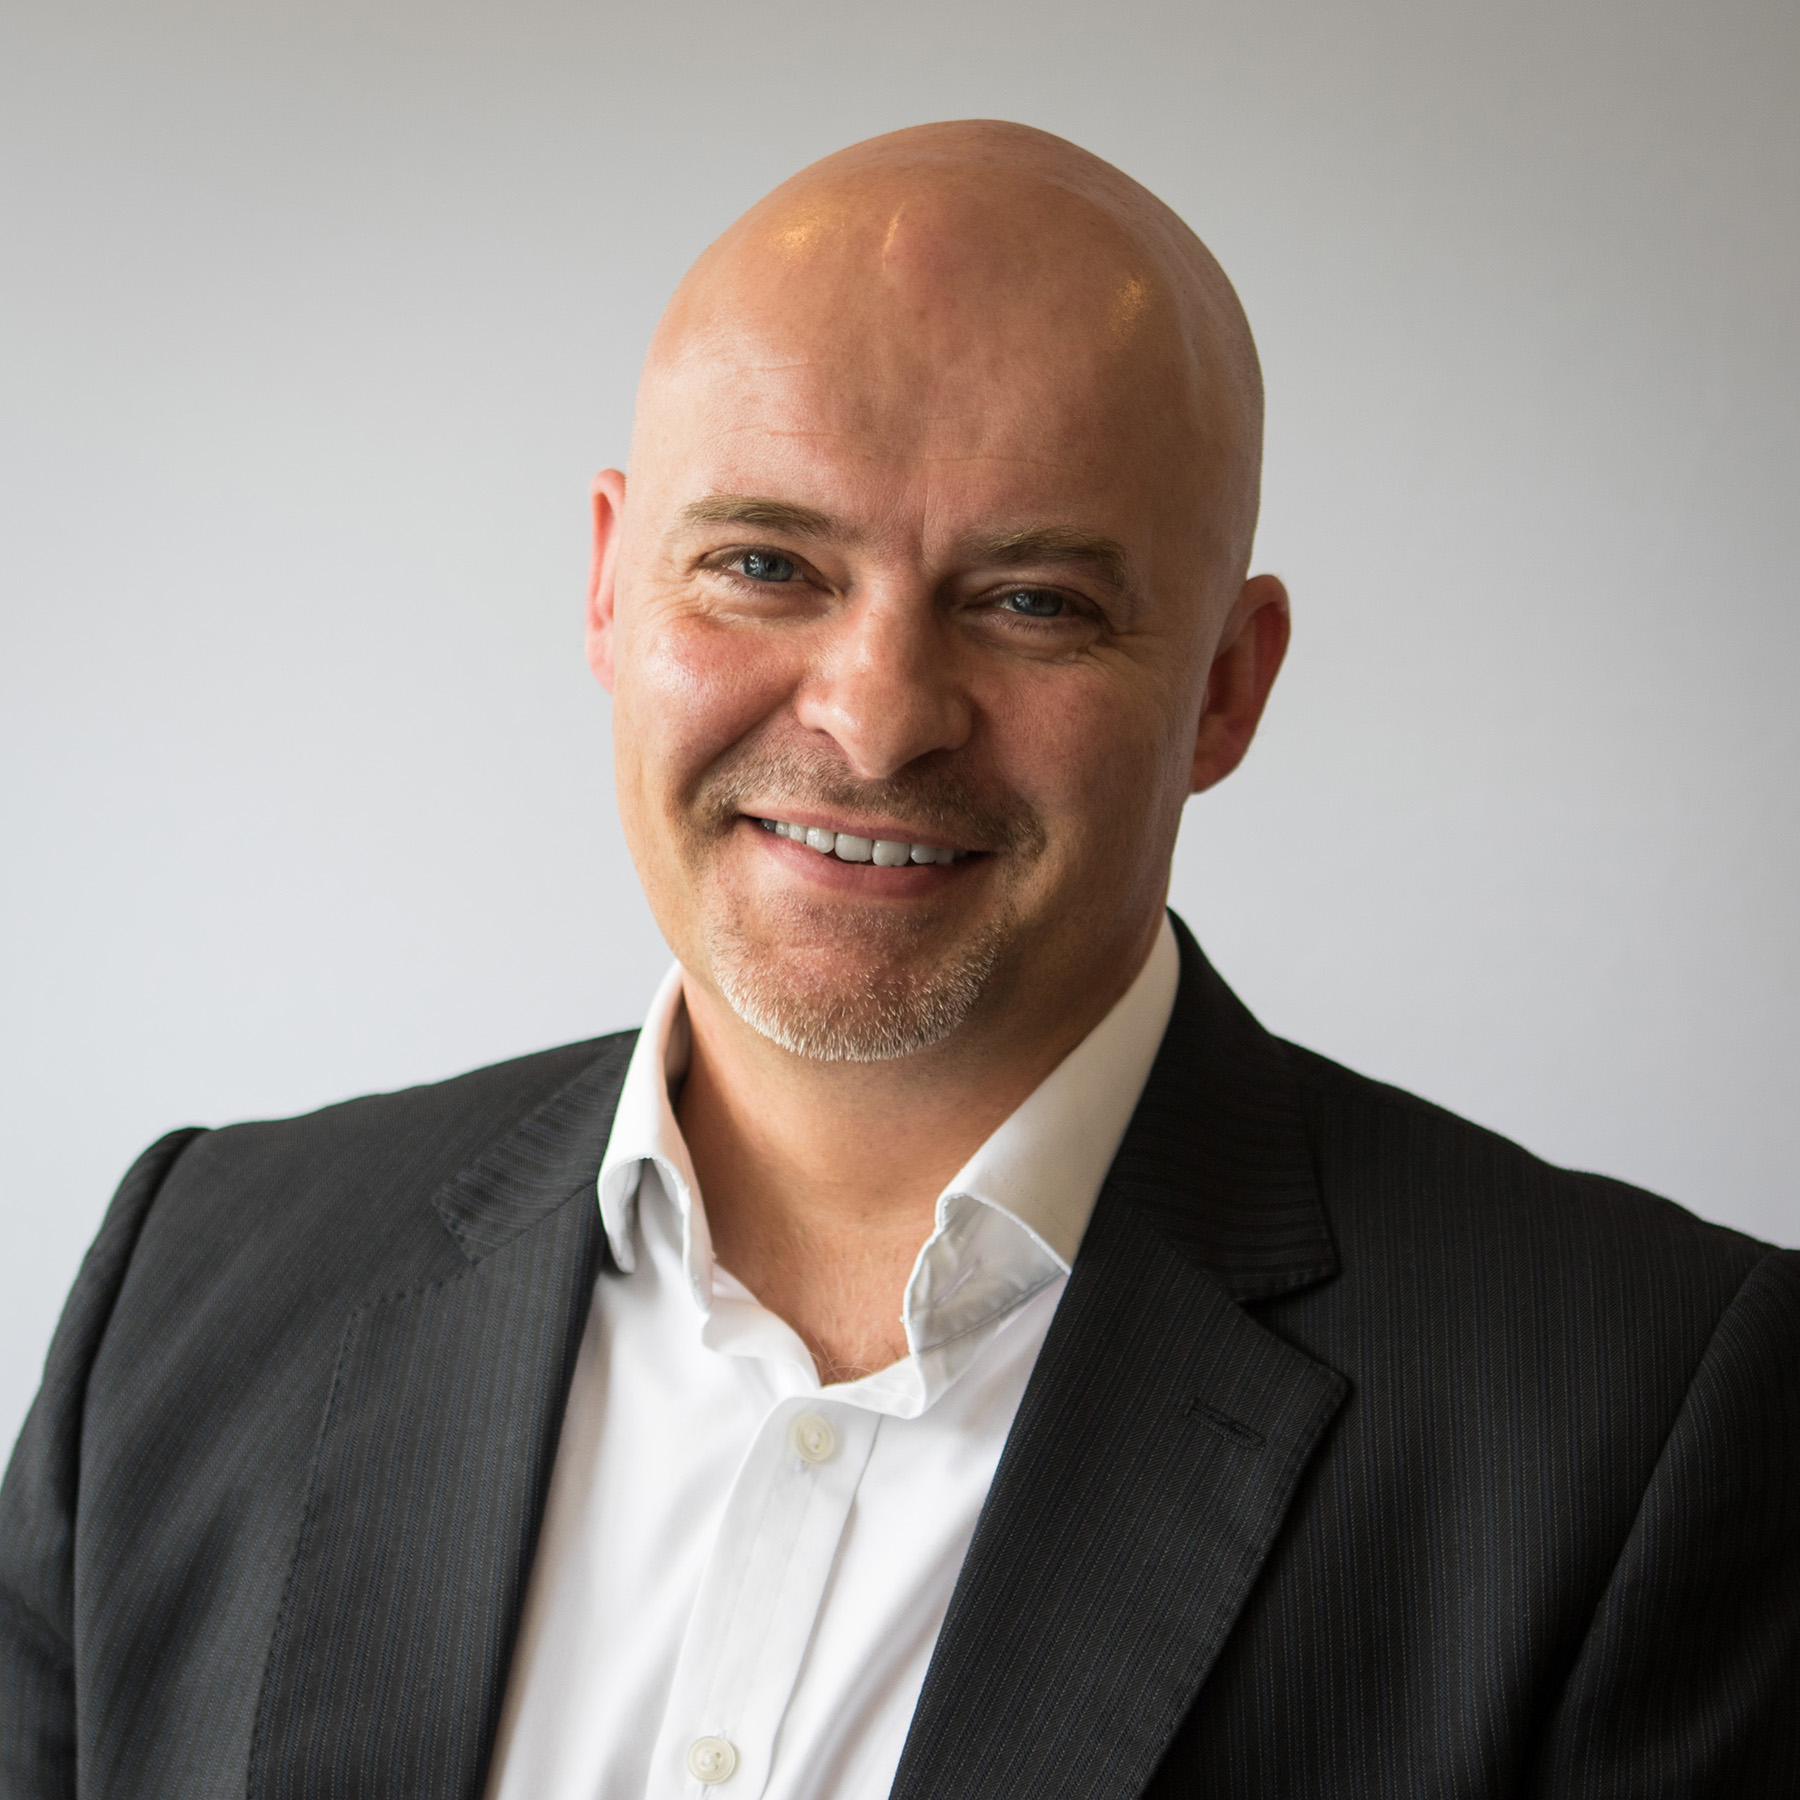 Nick Bate, director, Blue Eskimo, (above) will facilitate the session on personal branding at LearningLive, along with co-director, Nick Jones